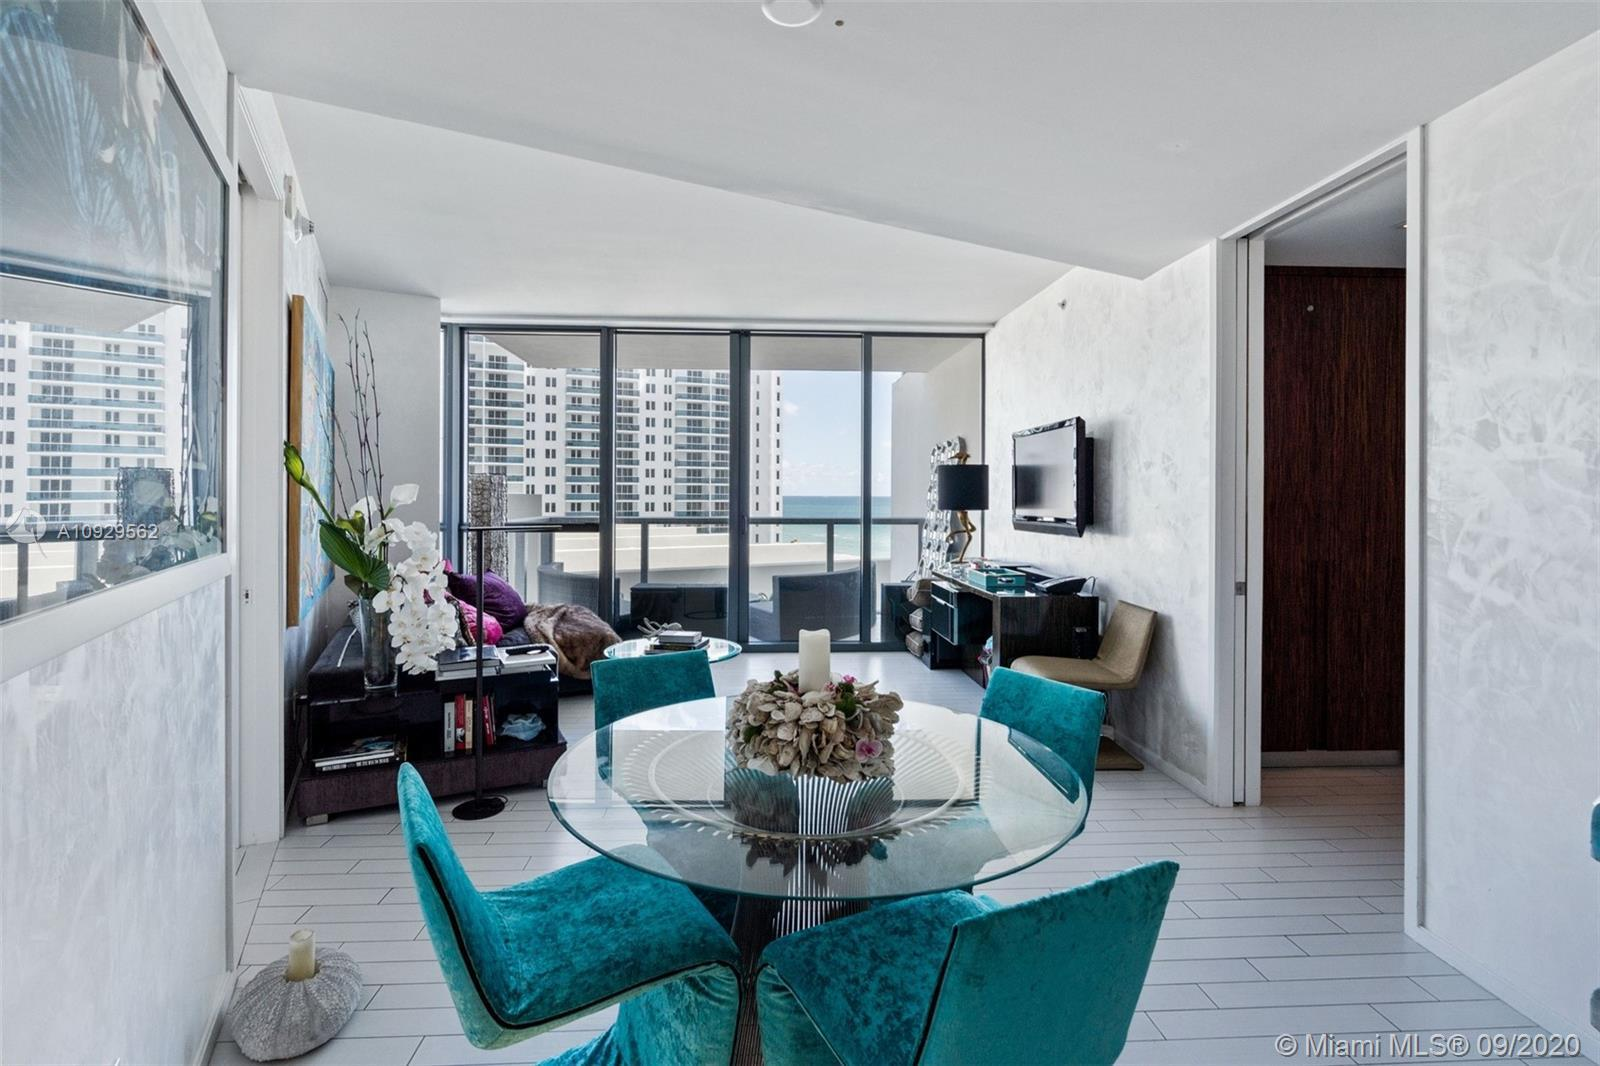 This luxury residence at the W South Beach is a 2 bedroom 2.5 bathroom suite. The master bedroom has